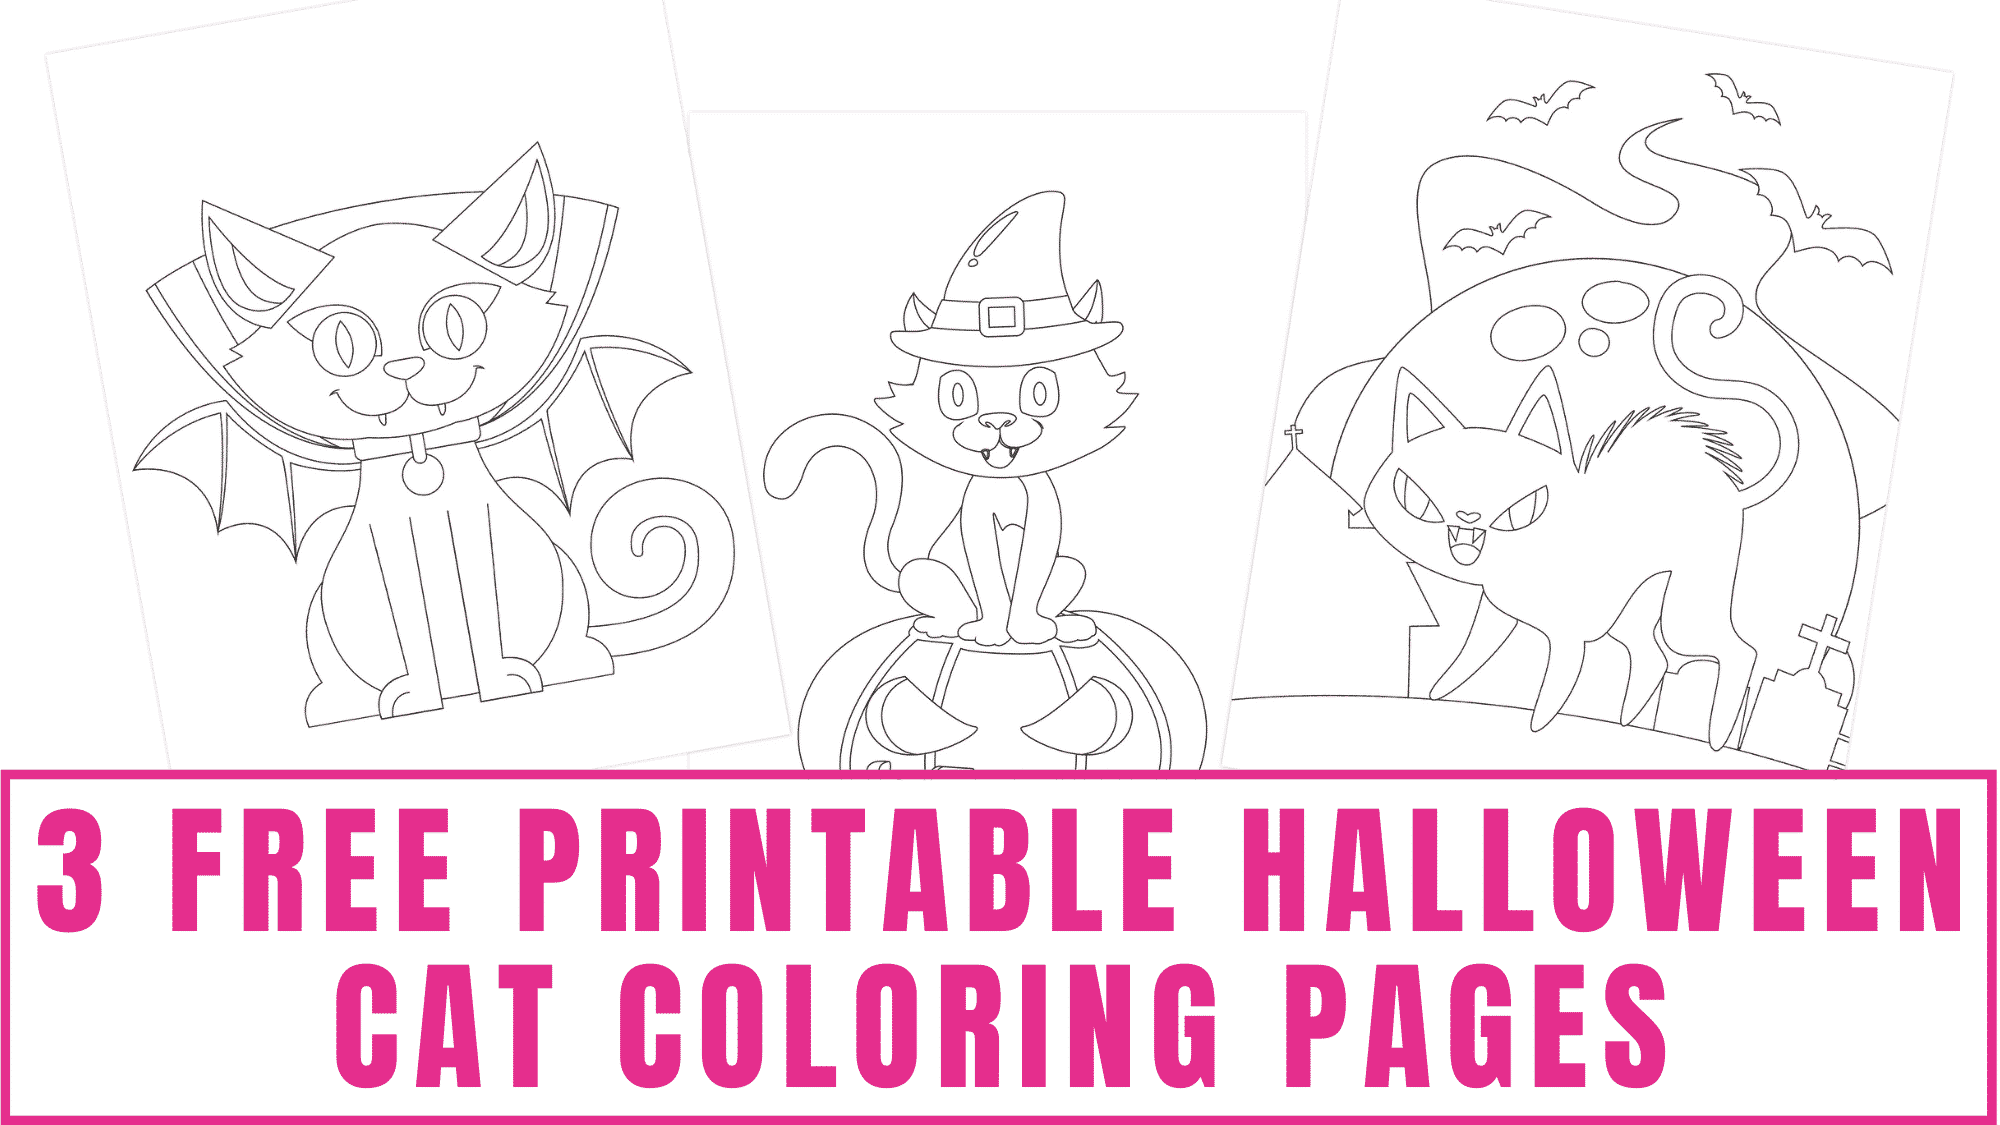 These free printable Halloween cat coloring pages are a good combination of cute and scary.